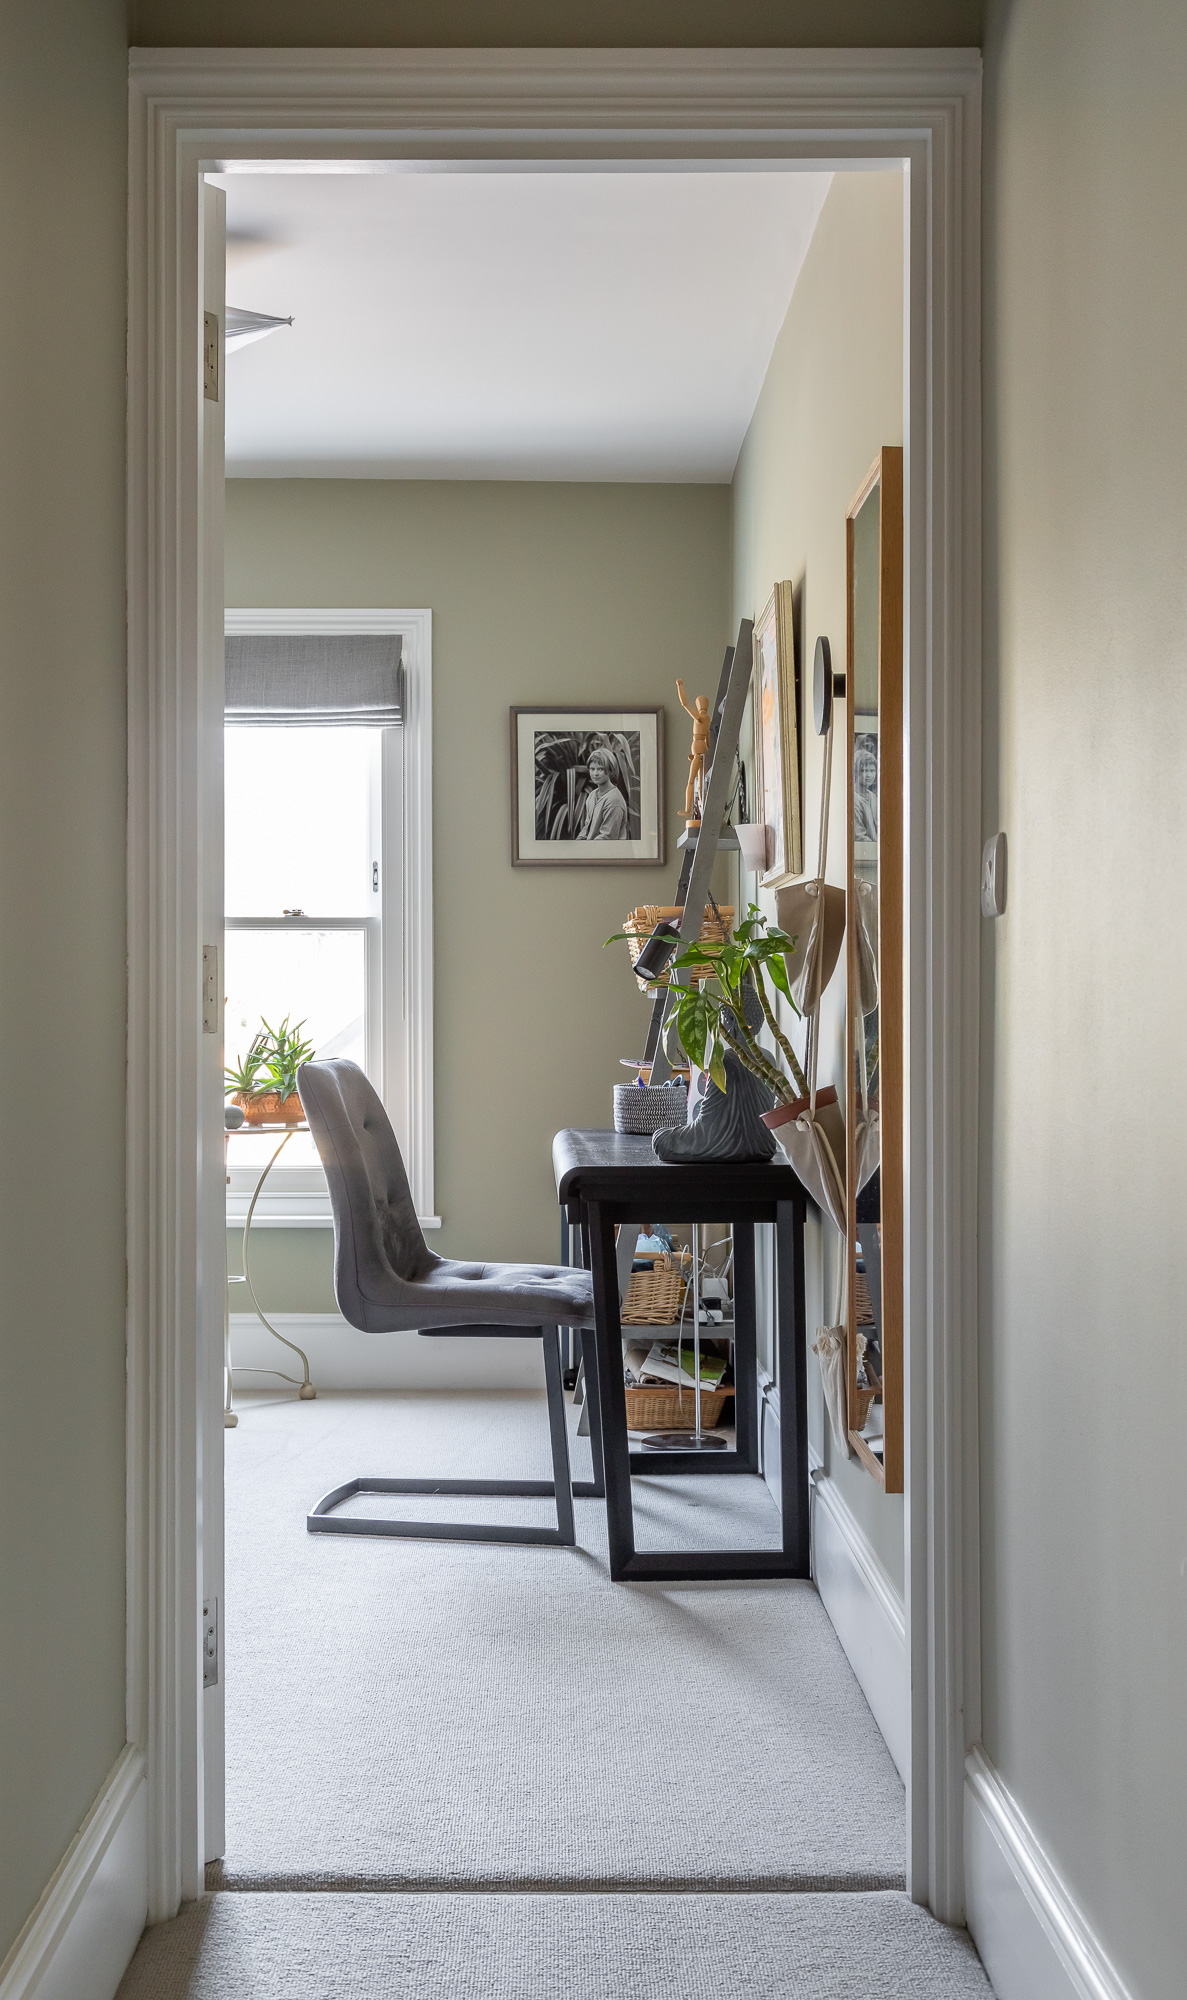 jonathan bond, view of writing desk & chair from hallway, mill road, cambridge